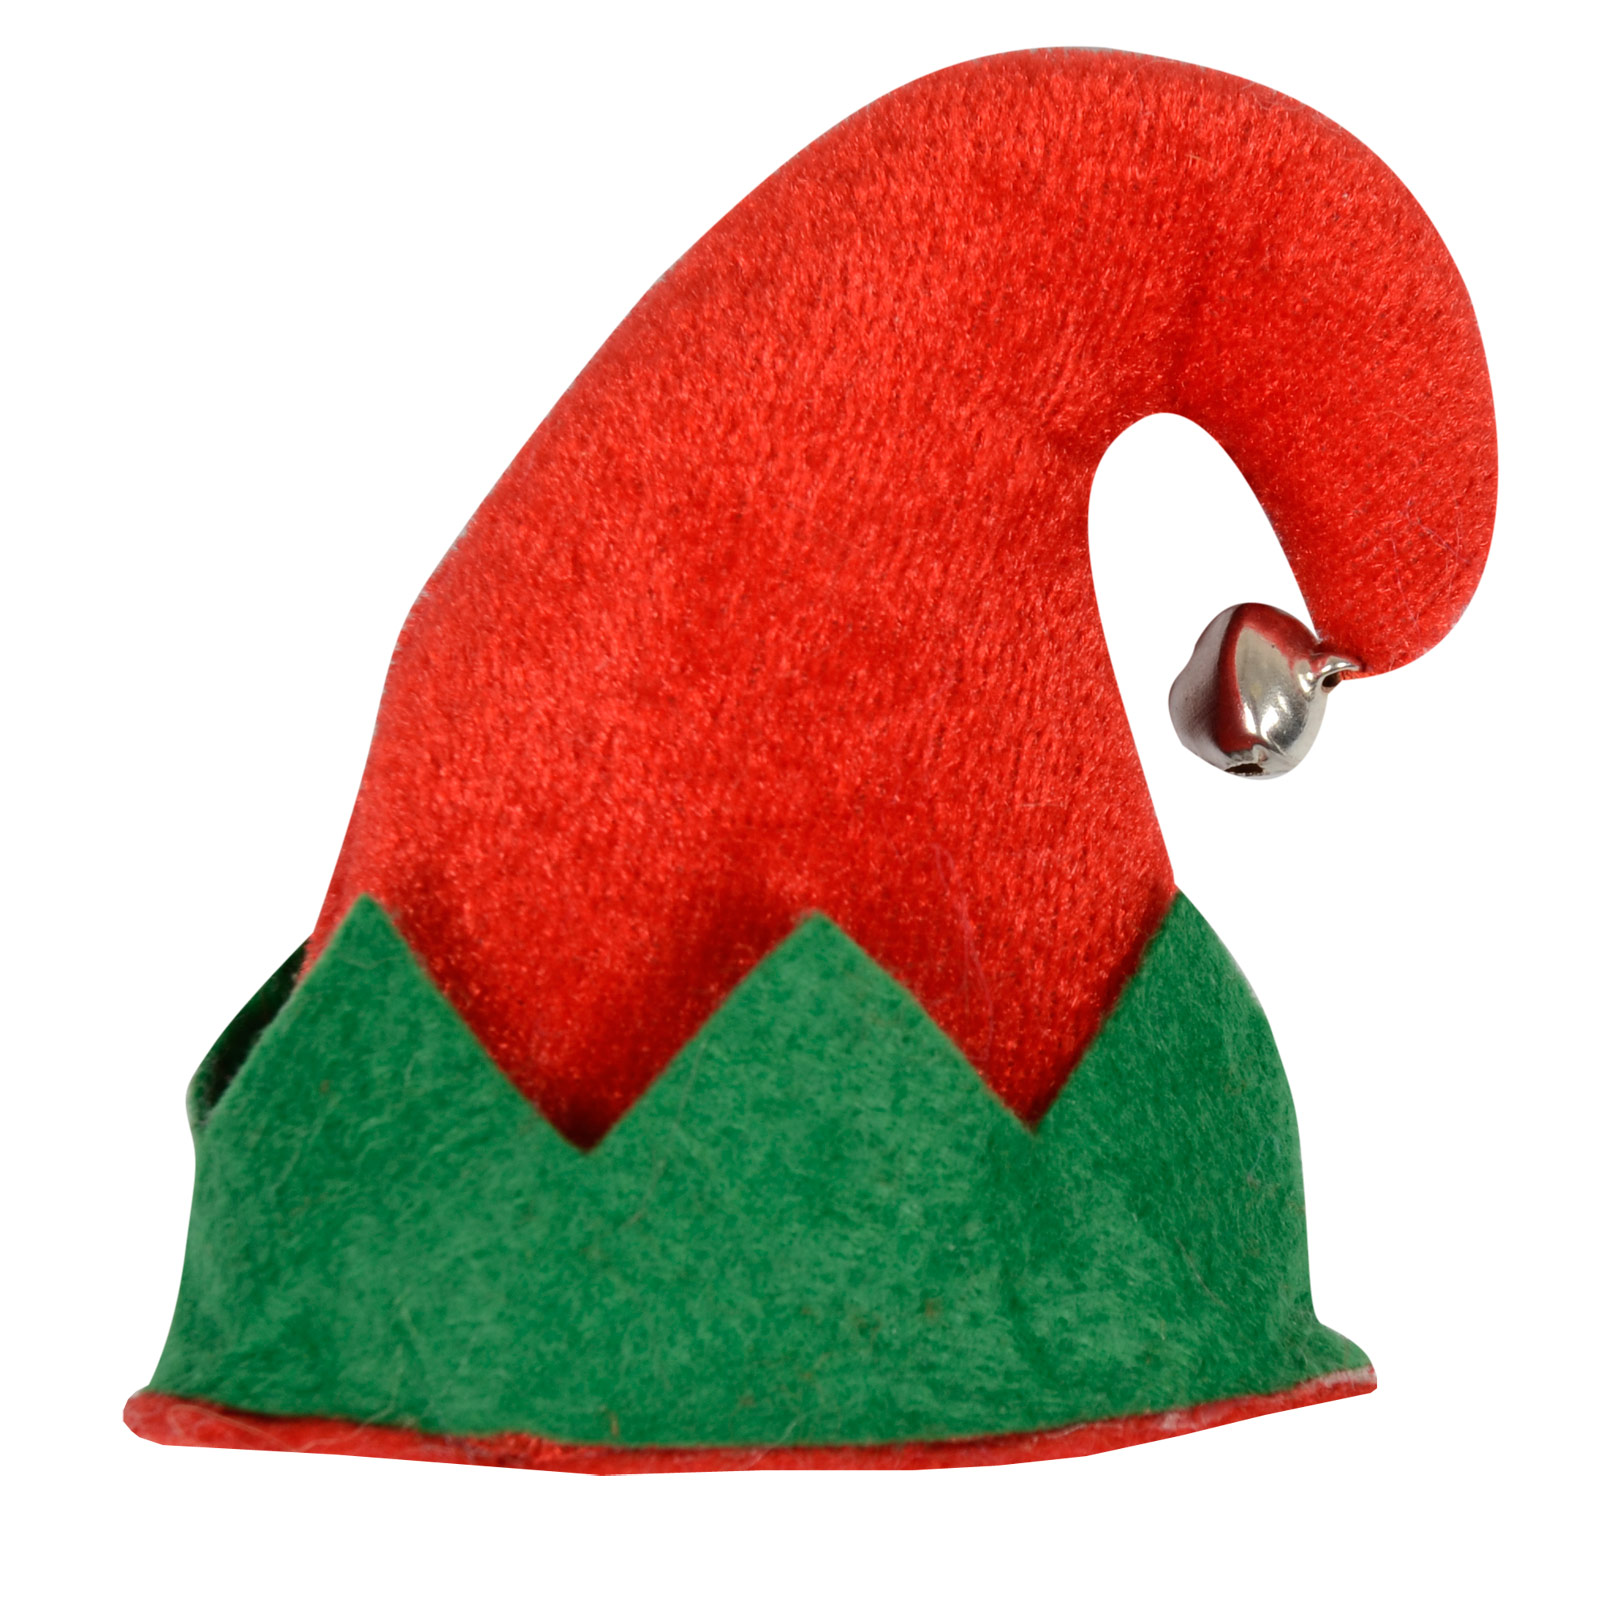 Red Green Mini Elf Hat Christmas Xmas Fe-Red Green Mini Elf Hat Christmas Xmas Festive Hair Clip With Jingle-17